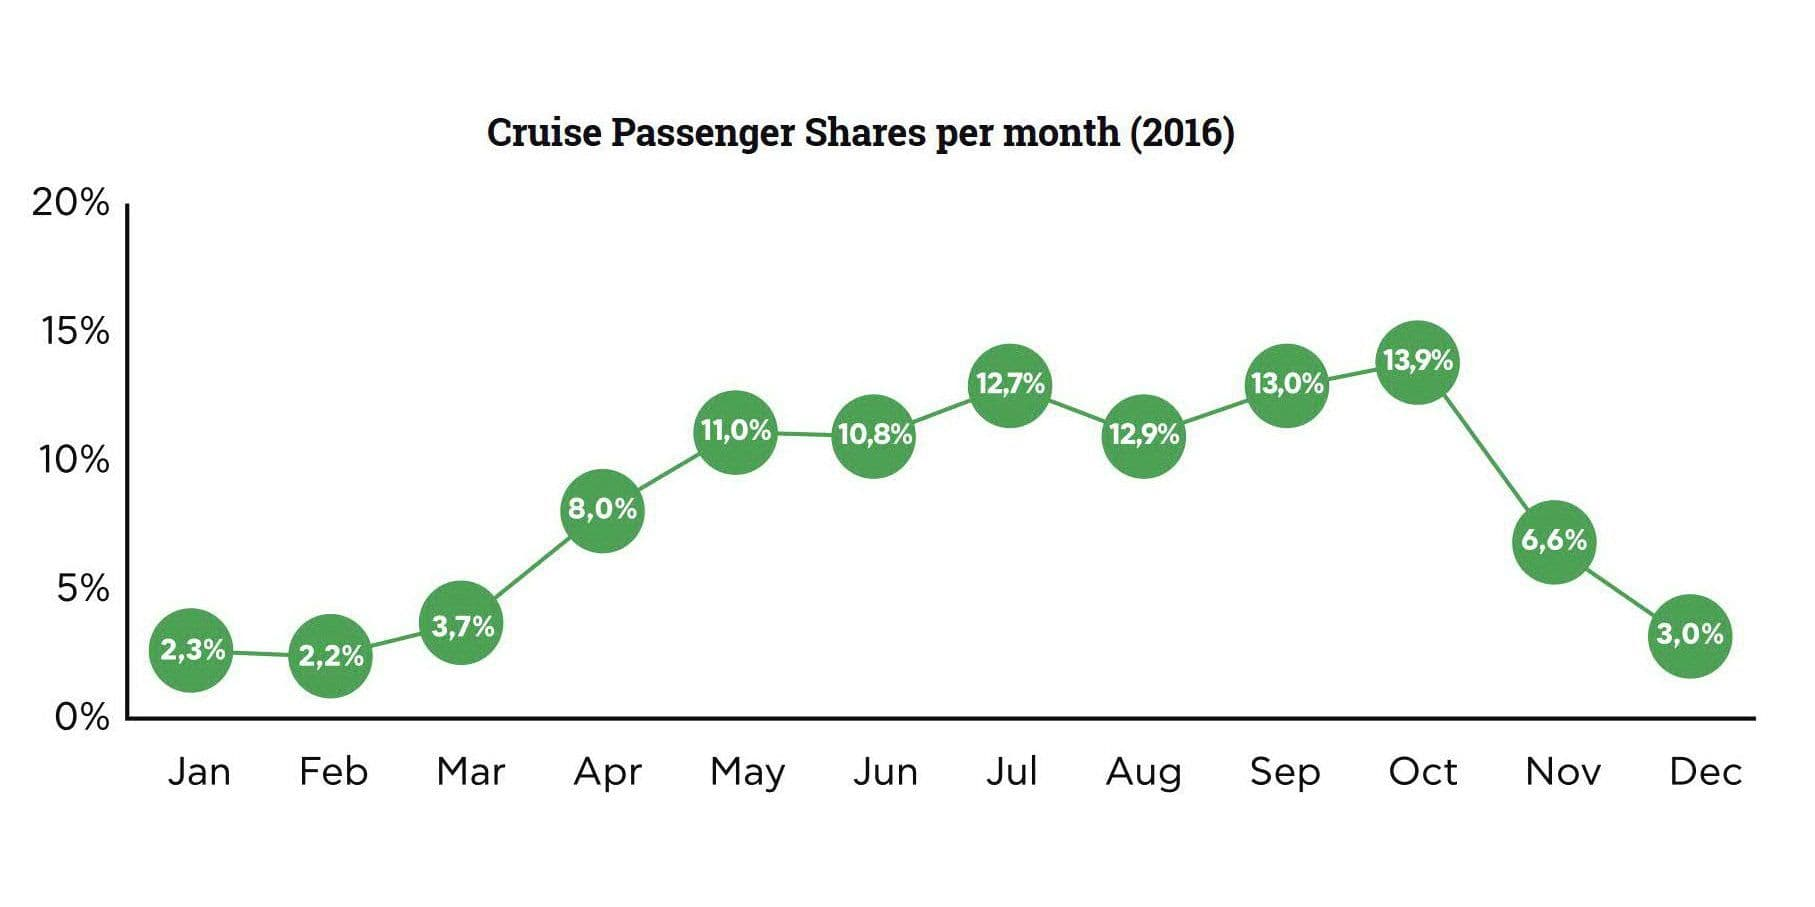 Cruise Passenger Shares per month_2016